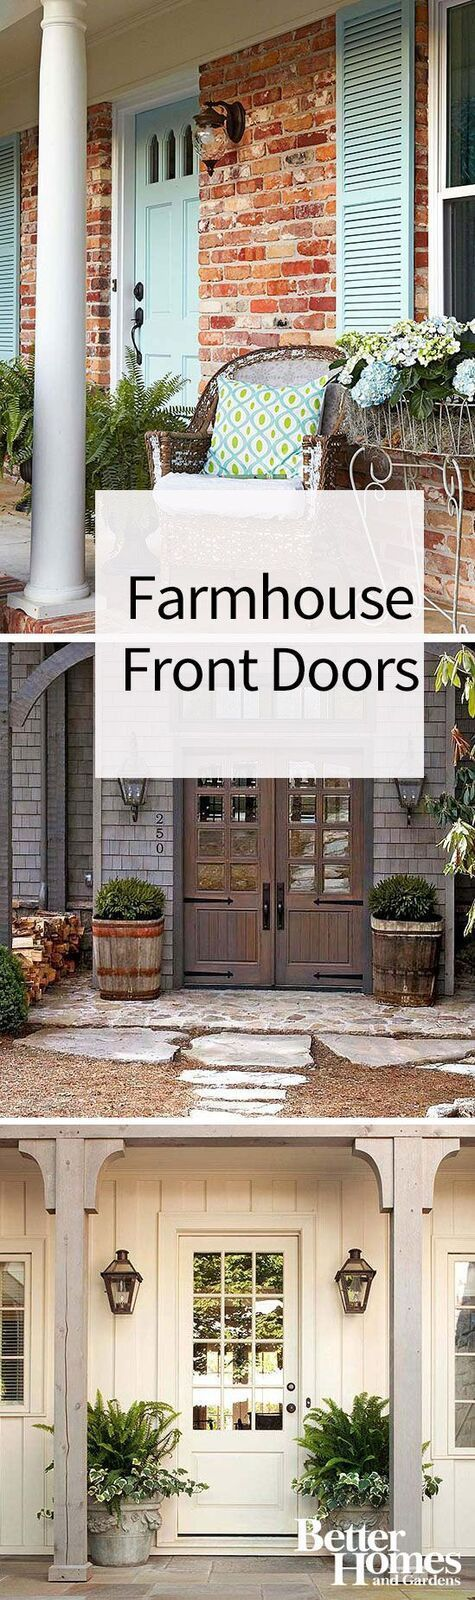 Farmhouse Front Doors Farmhouse Front Curb Appeal And Front Doors